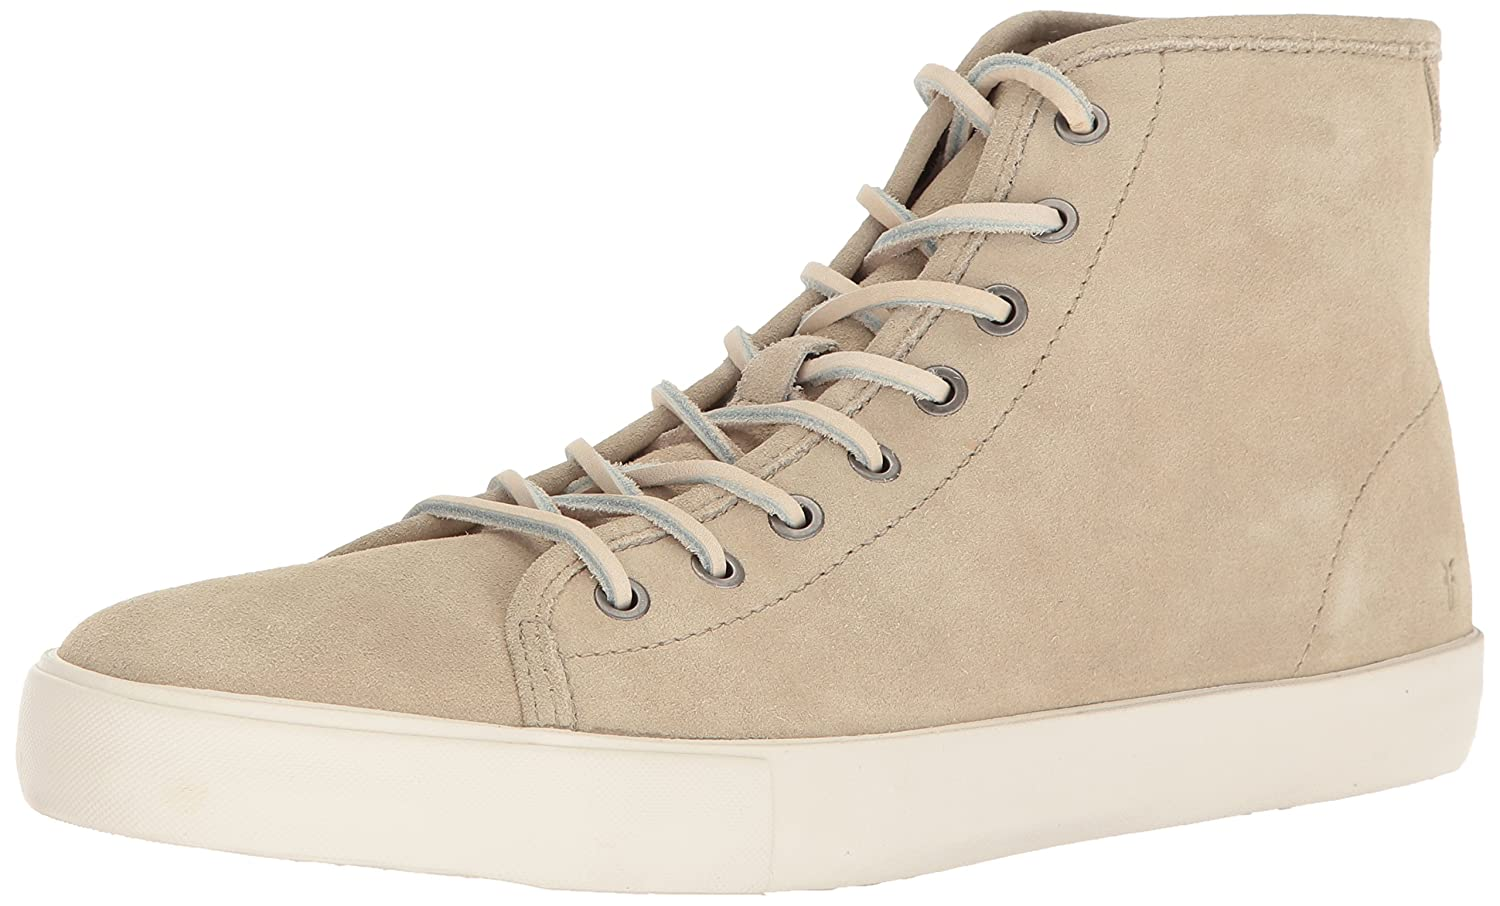 FRYE Men's Brett High Tennis Shoe B01H3XWJGO 8.5 D(M) US|Bone